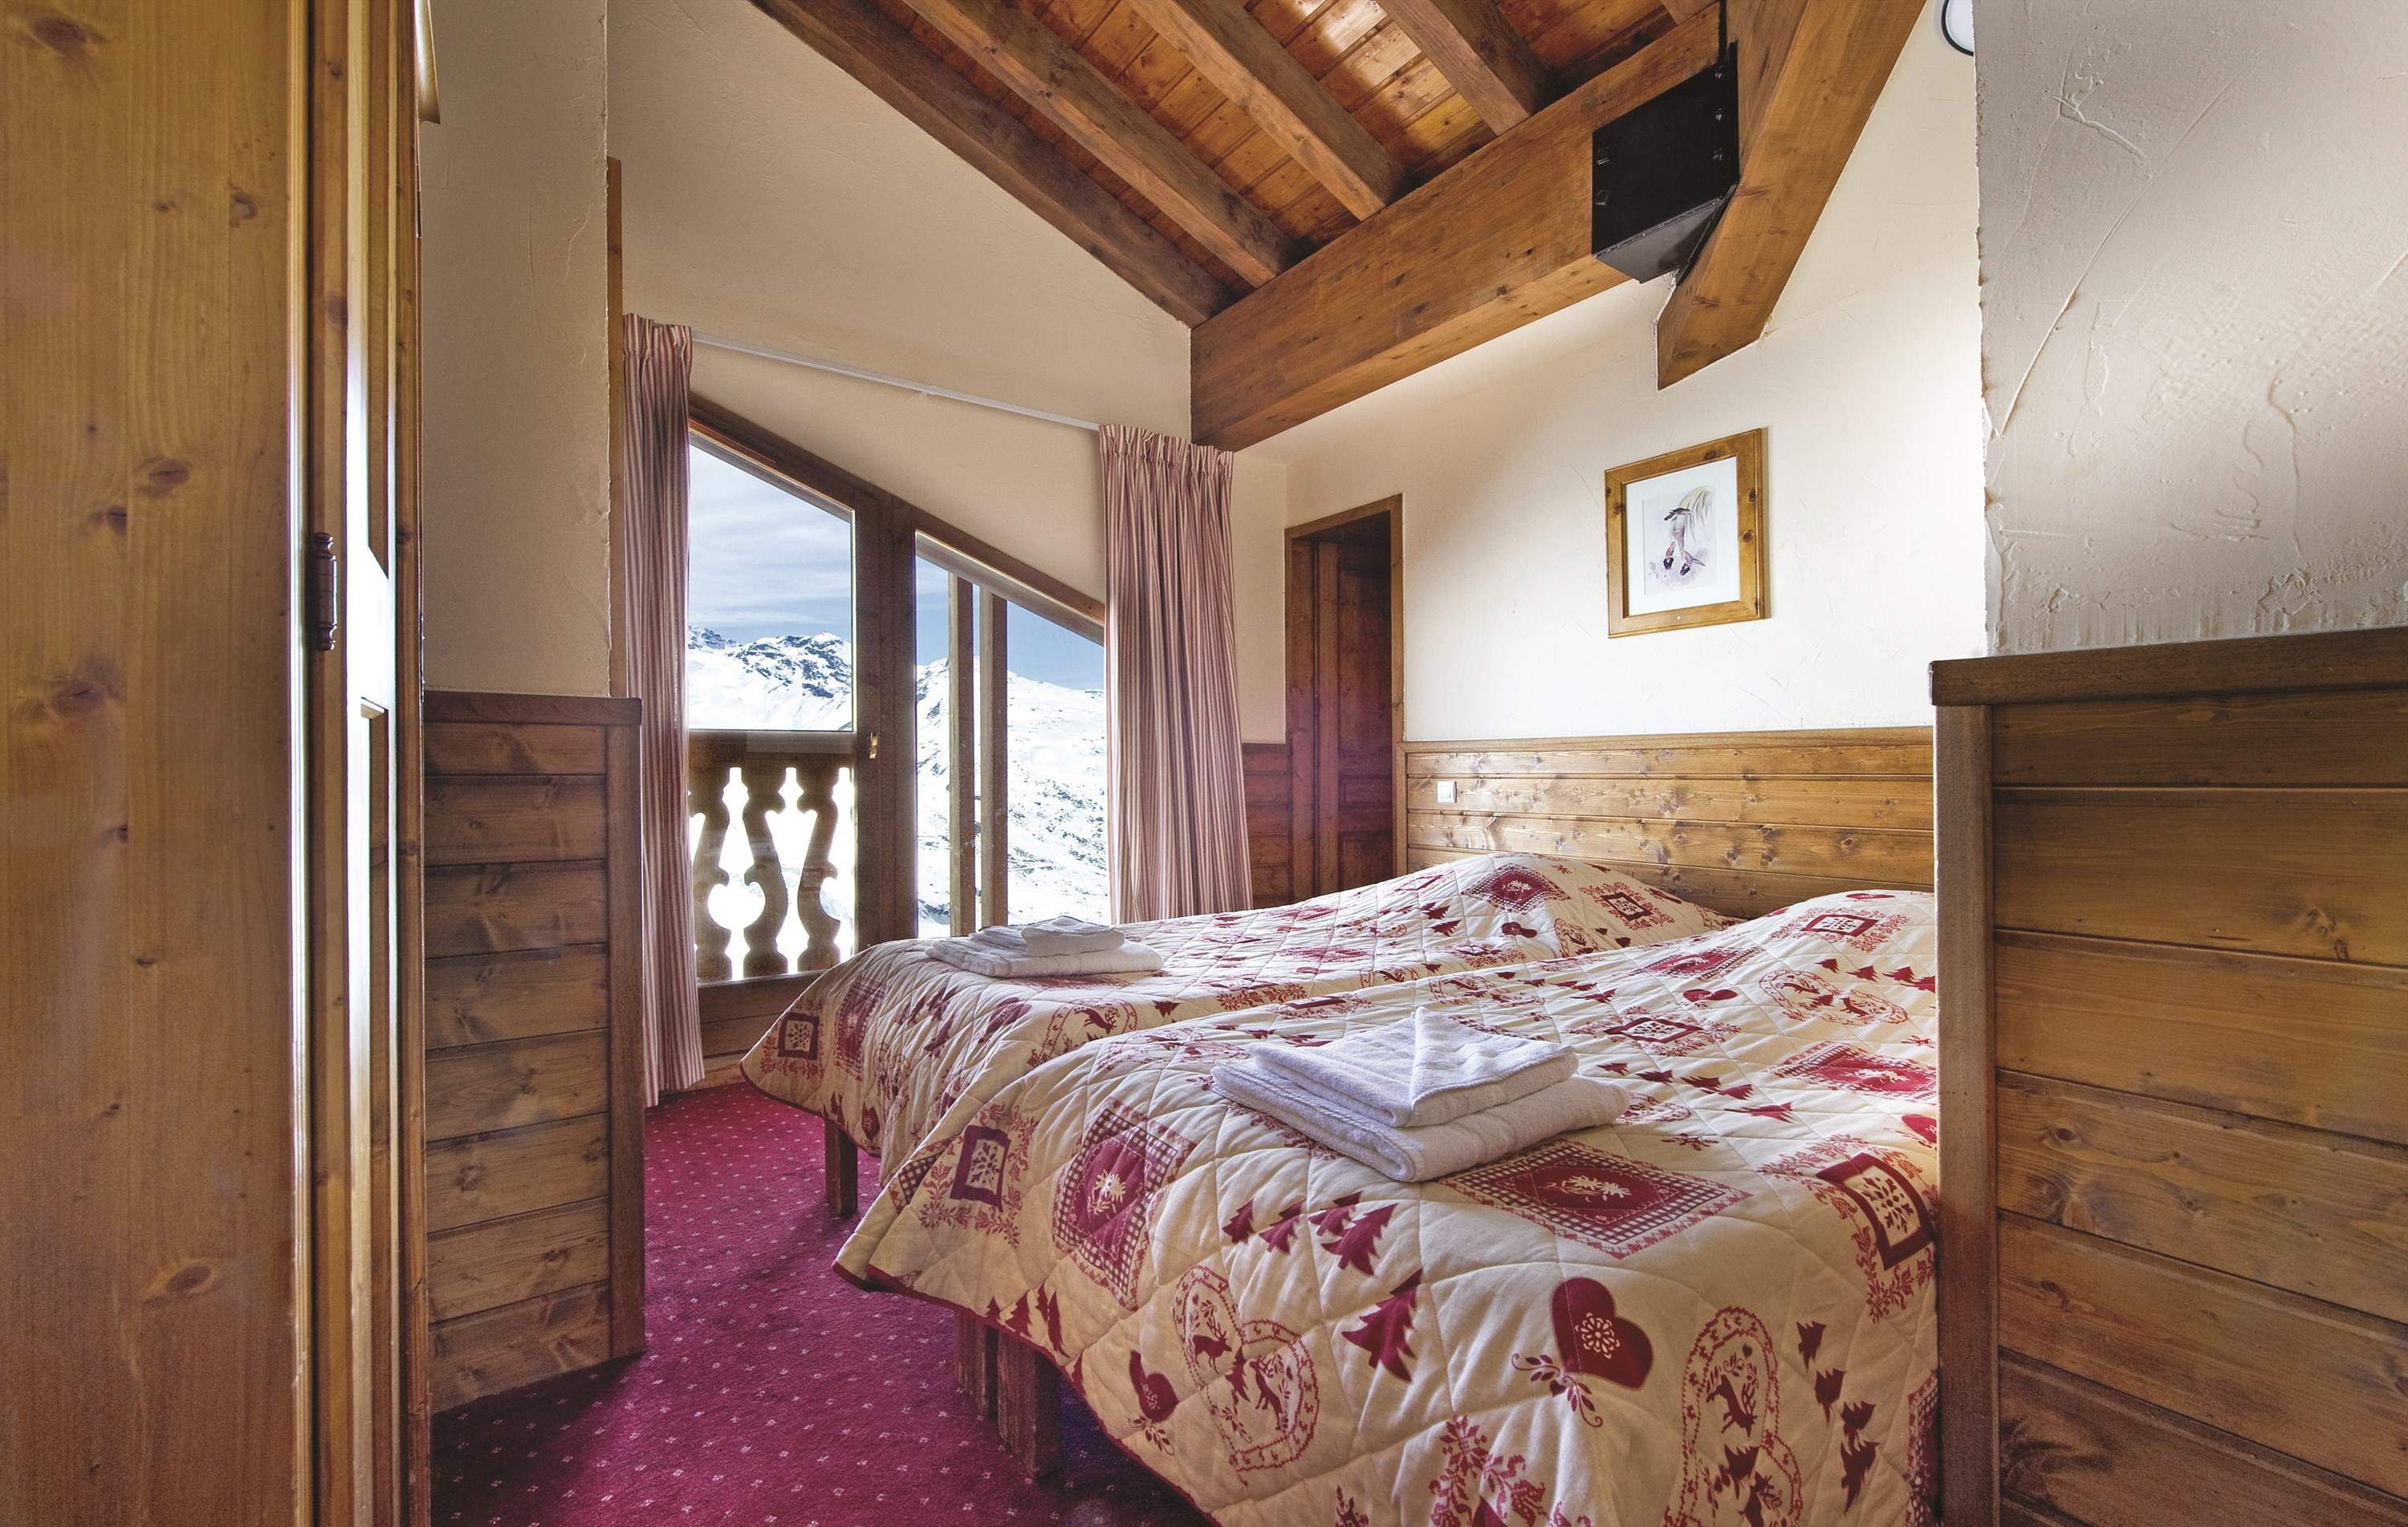 France_Val-Thorens_chalet_amelie_bedroom.jpg